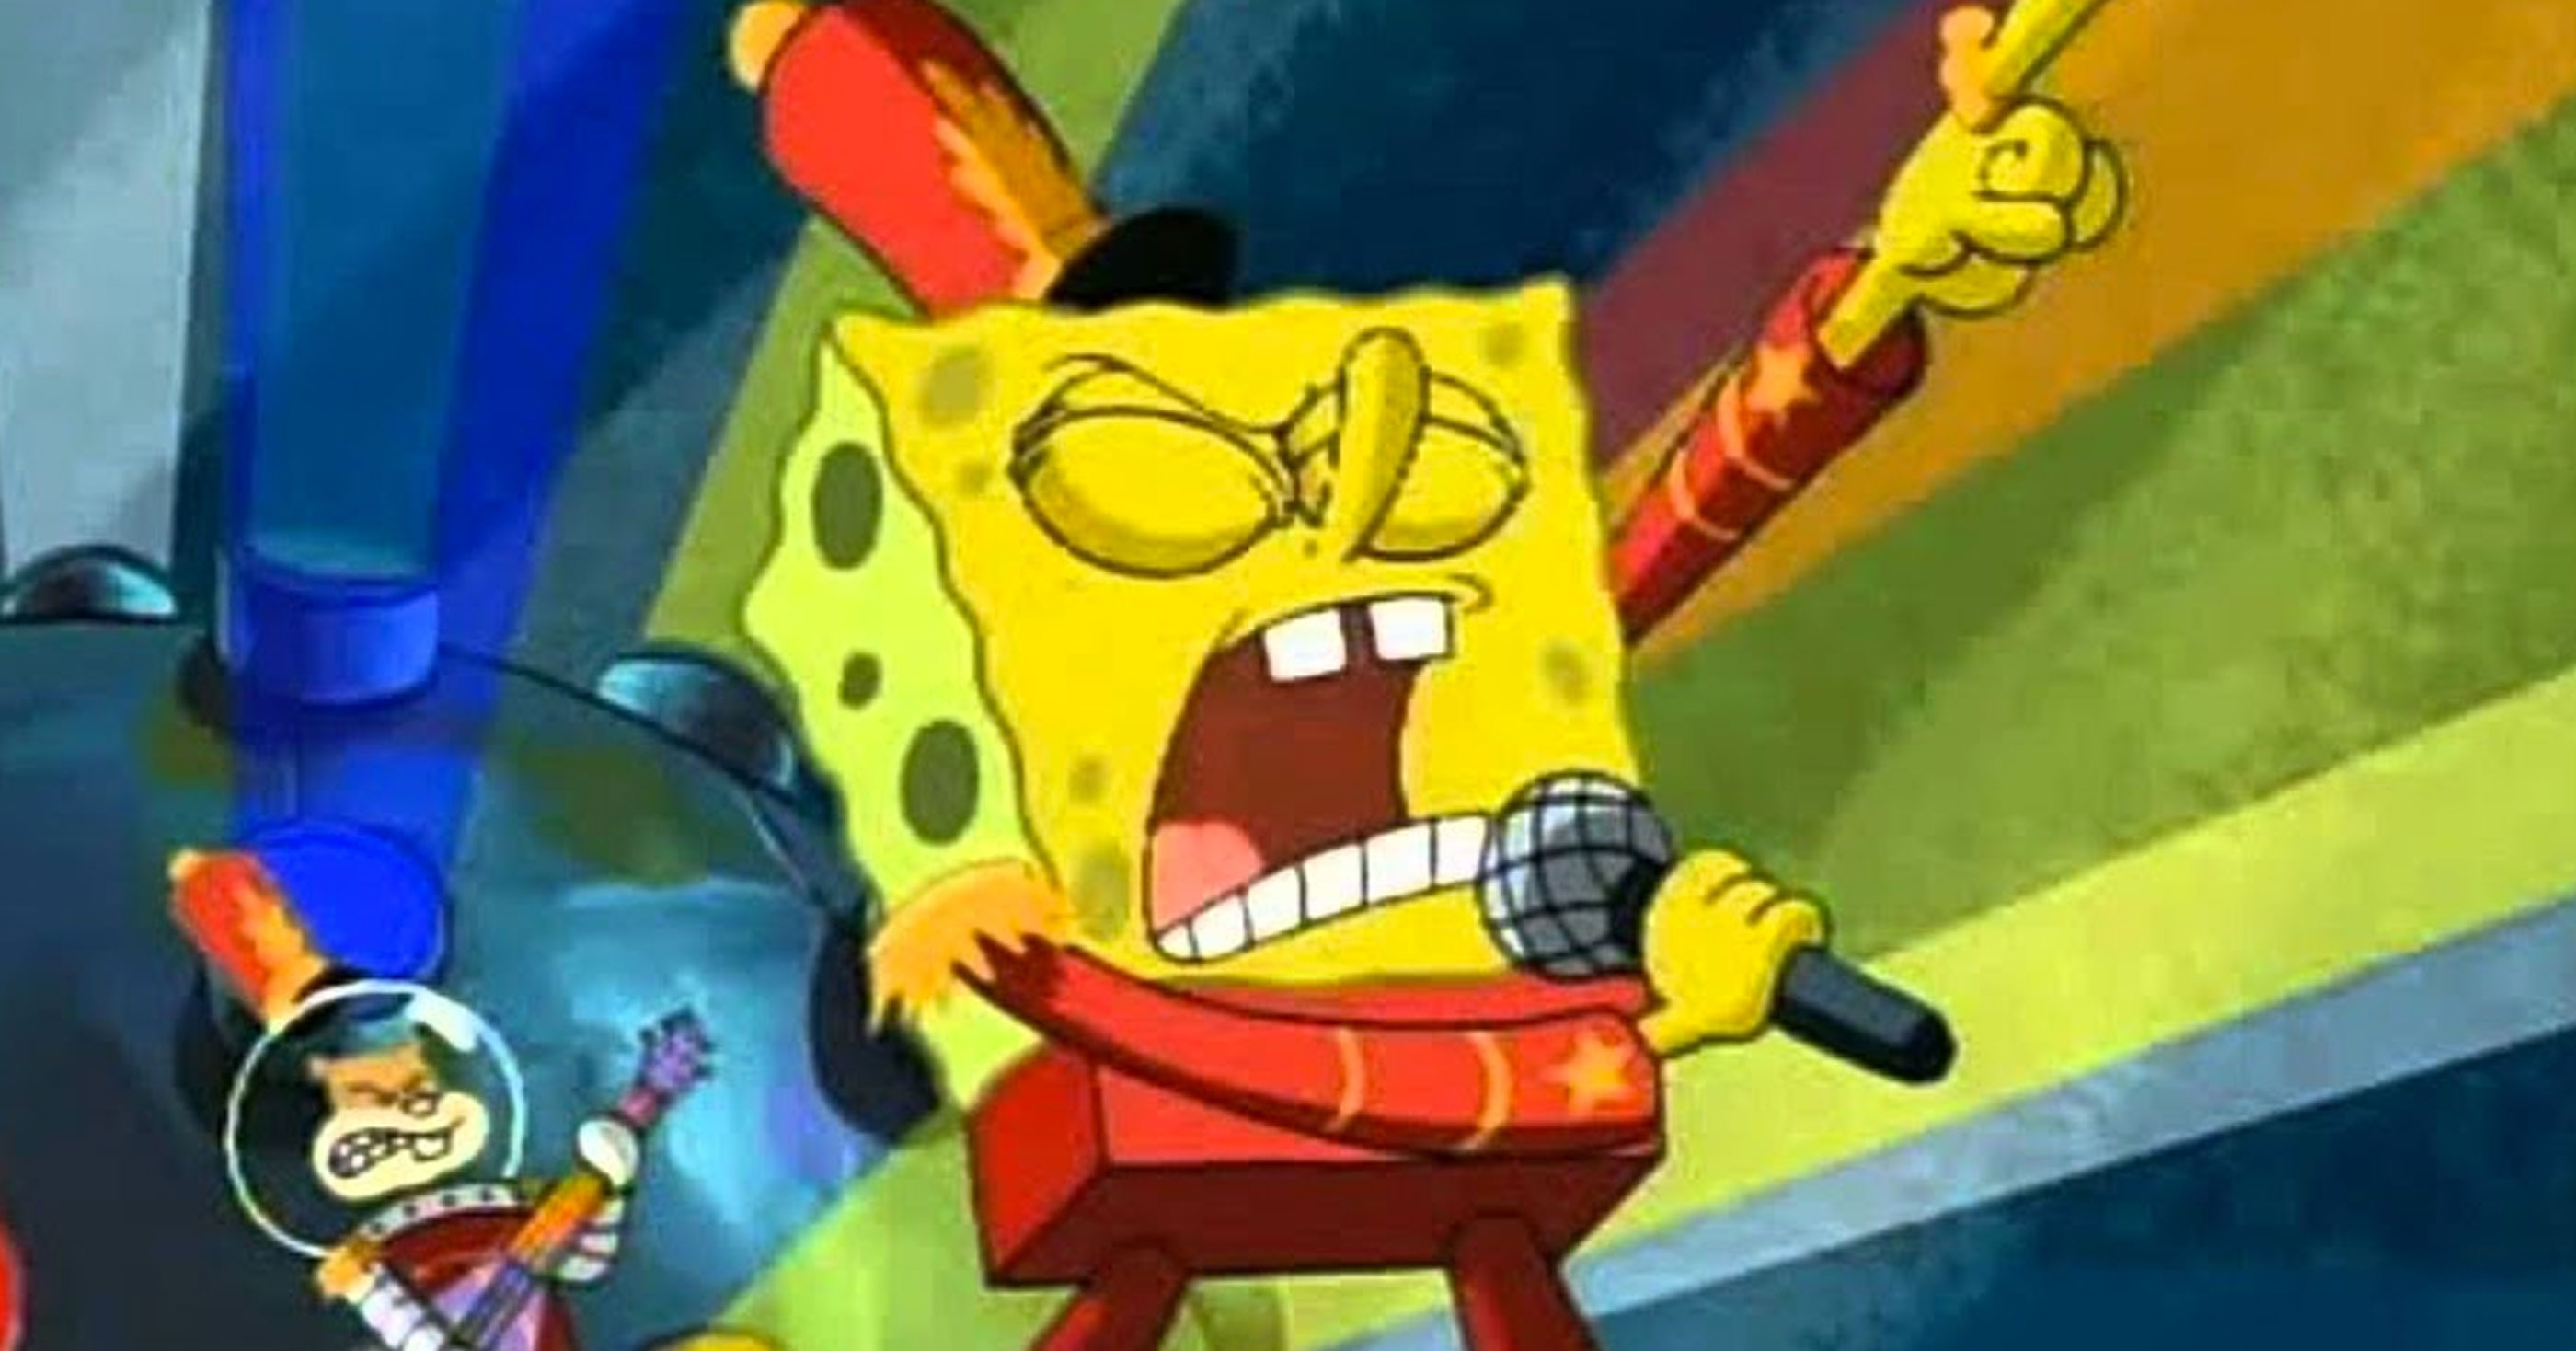 Petition For Spongebob's 'sweet Victory' To Be Super Bowl 53 regarding Spongebob Squarepants Sweet Victory